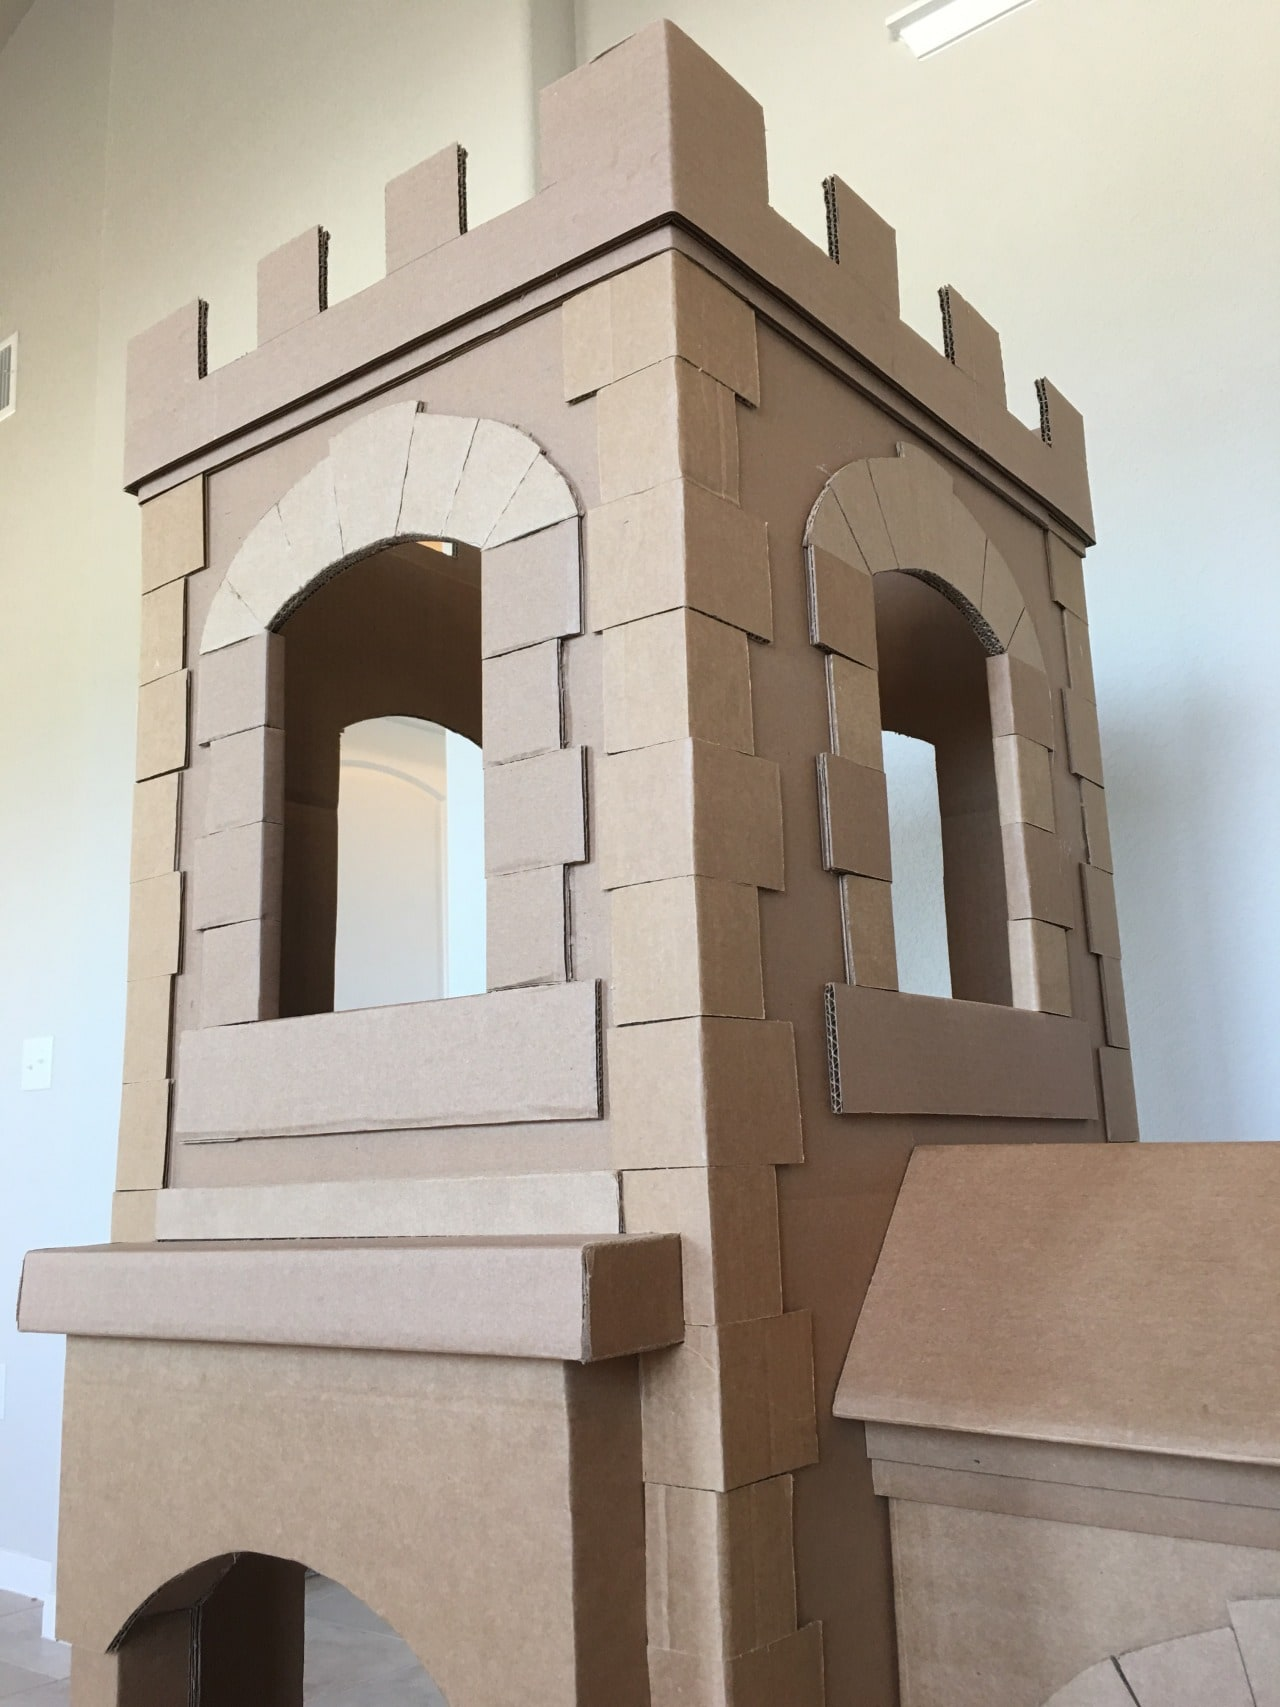 A Kid39s Dream Cardboard Castle Made Out Of Boxes Brandon